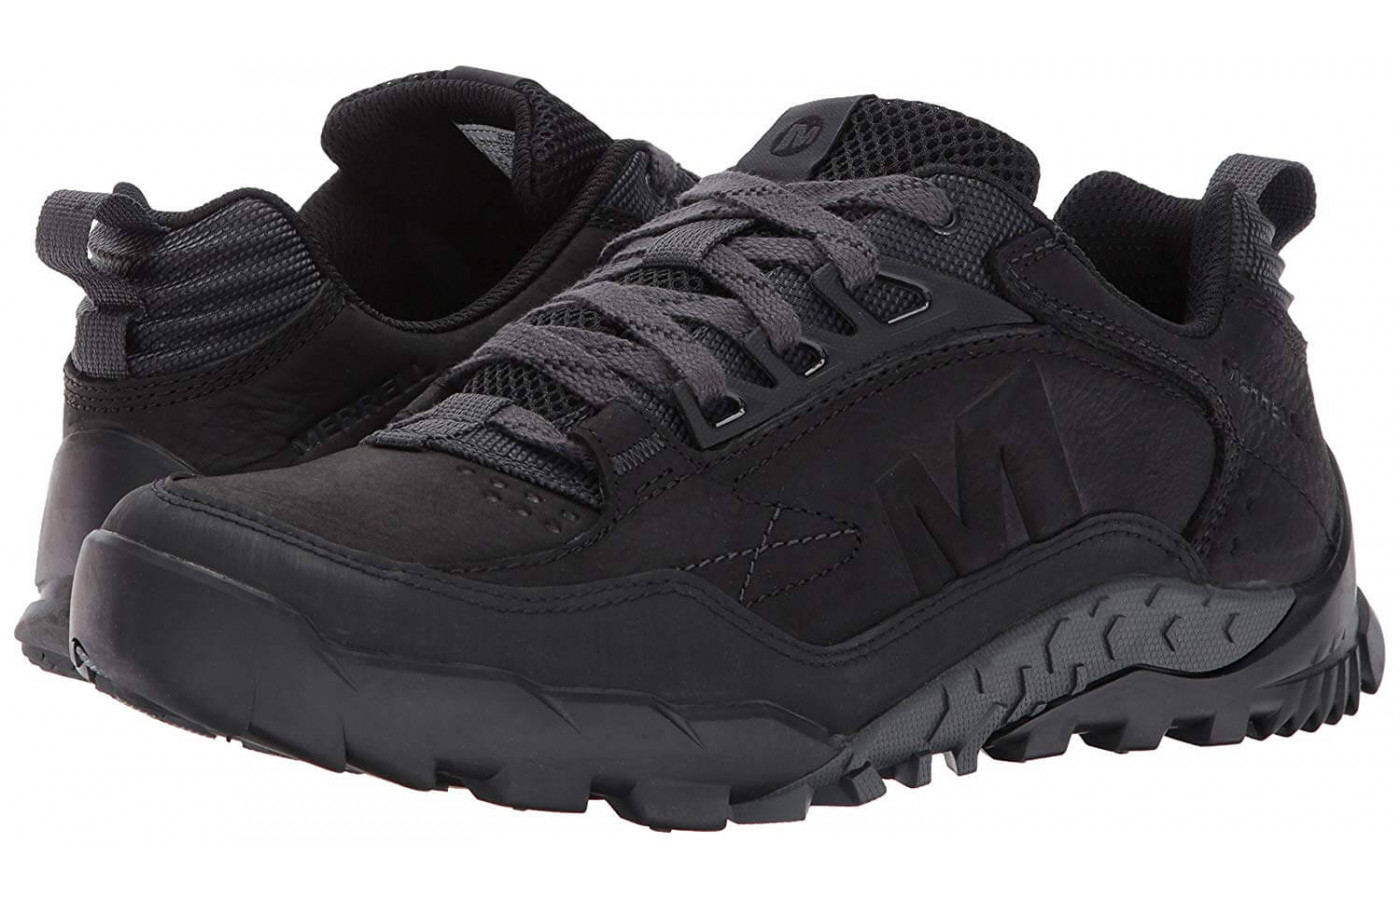 The Merrell Men's Annex Trak Low Shoe is affordable